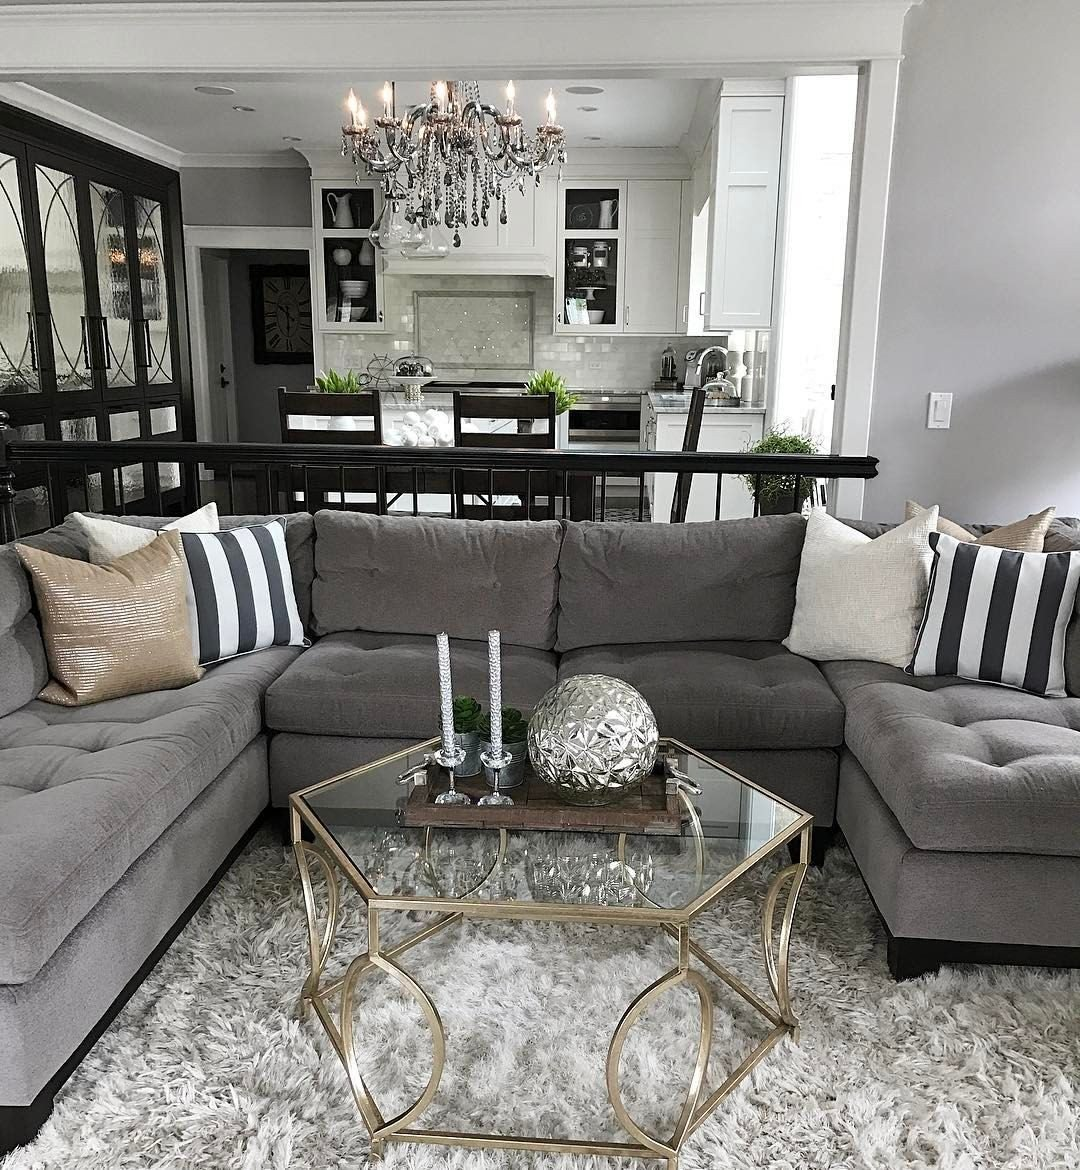 Grey Couch Living Room Decor Change Up the Gray Couch with and Chic Black and White